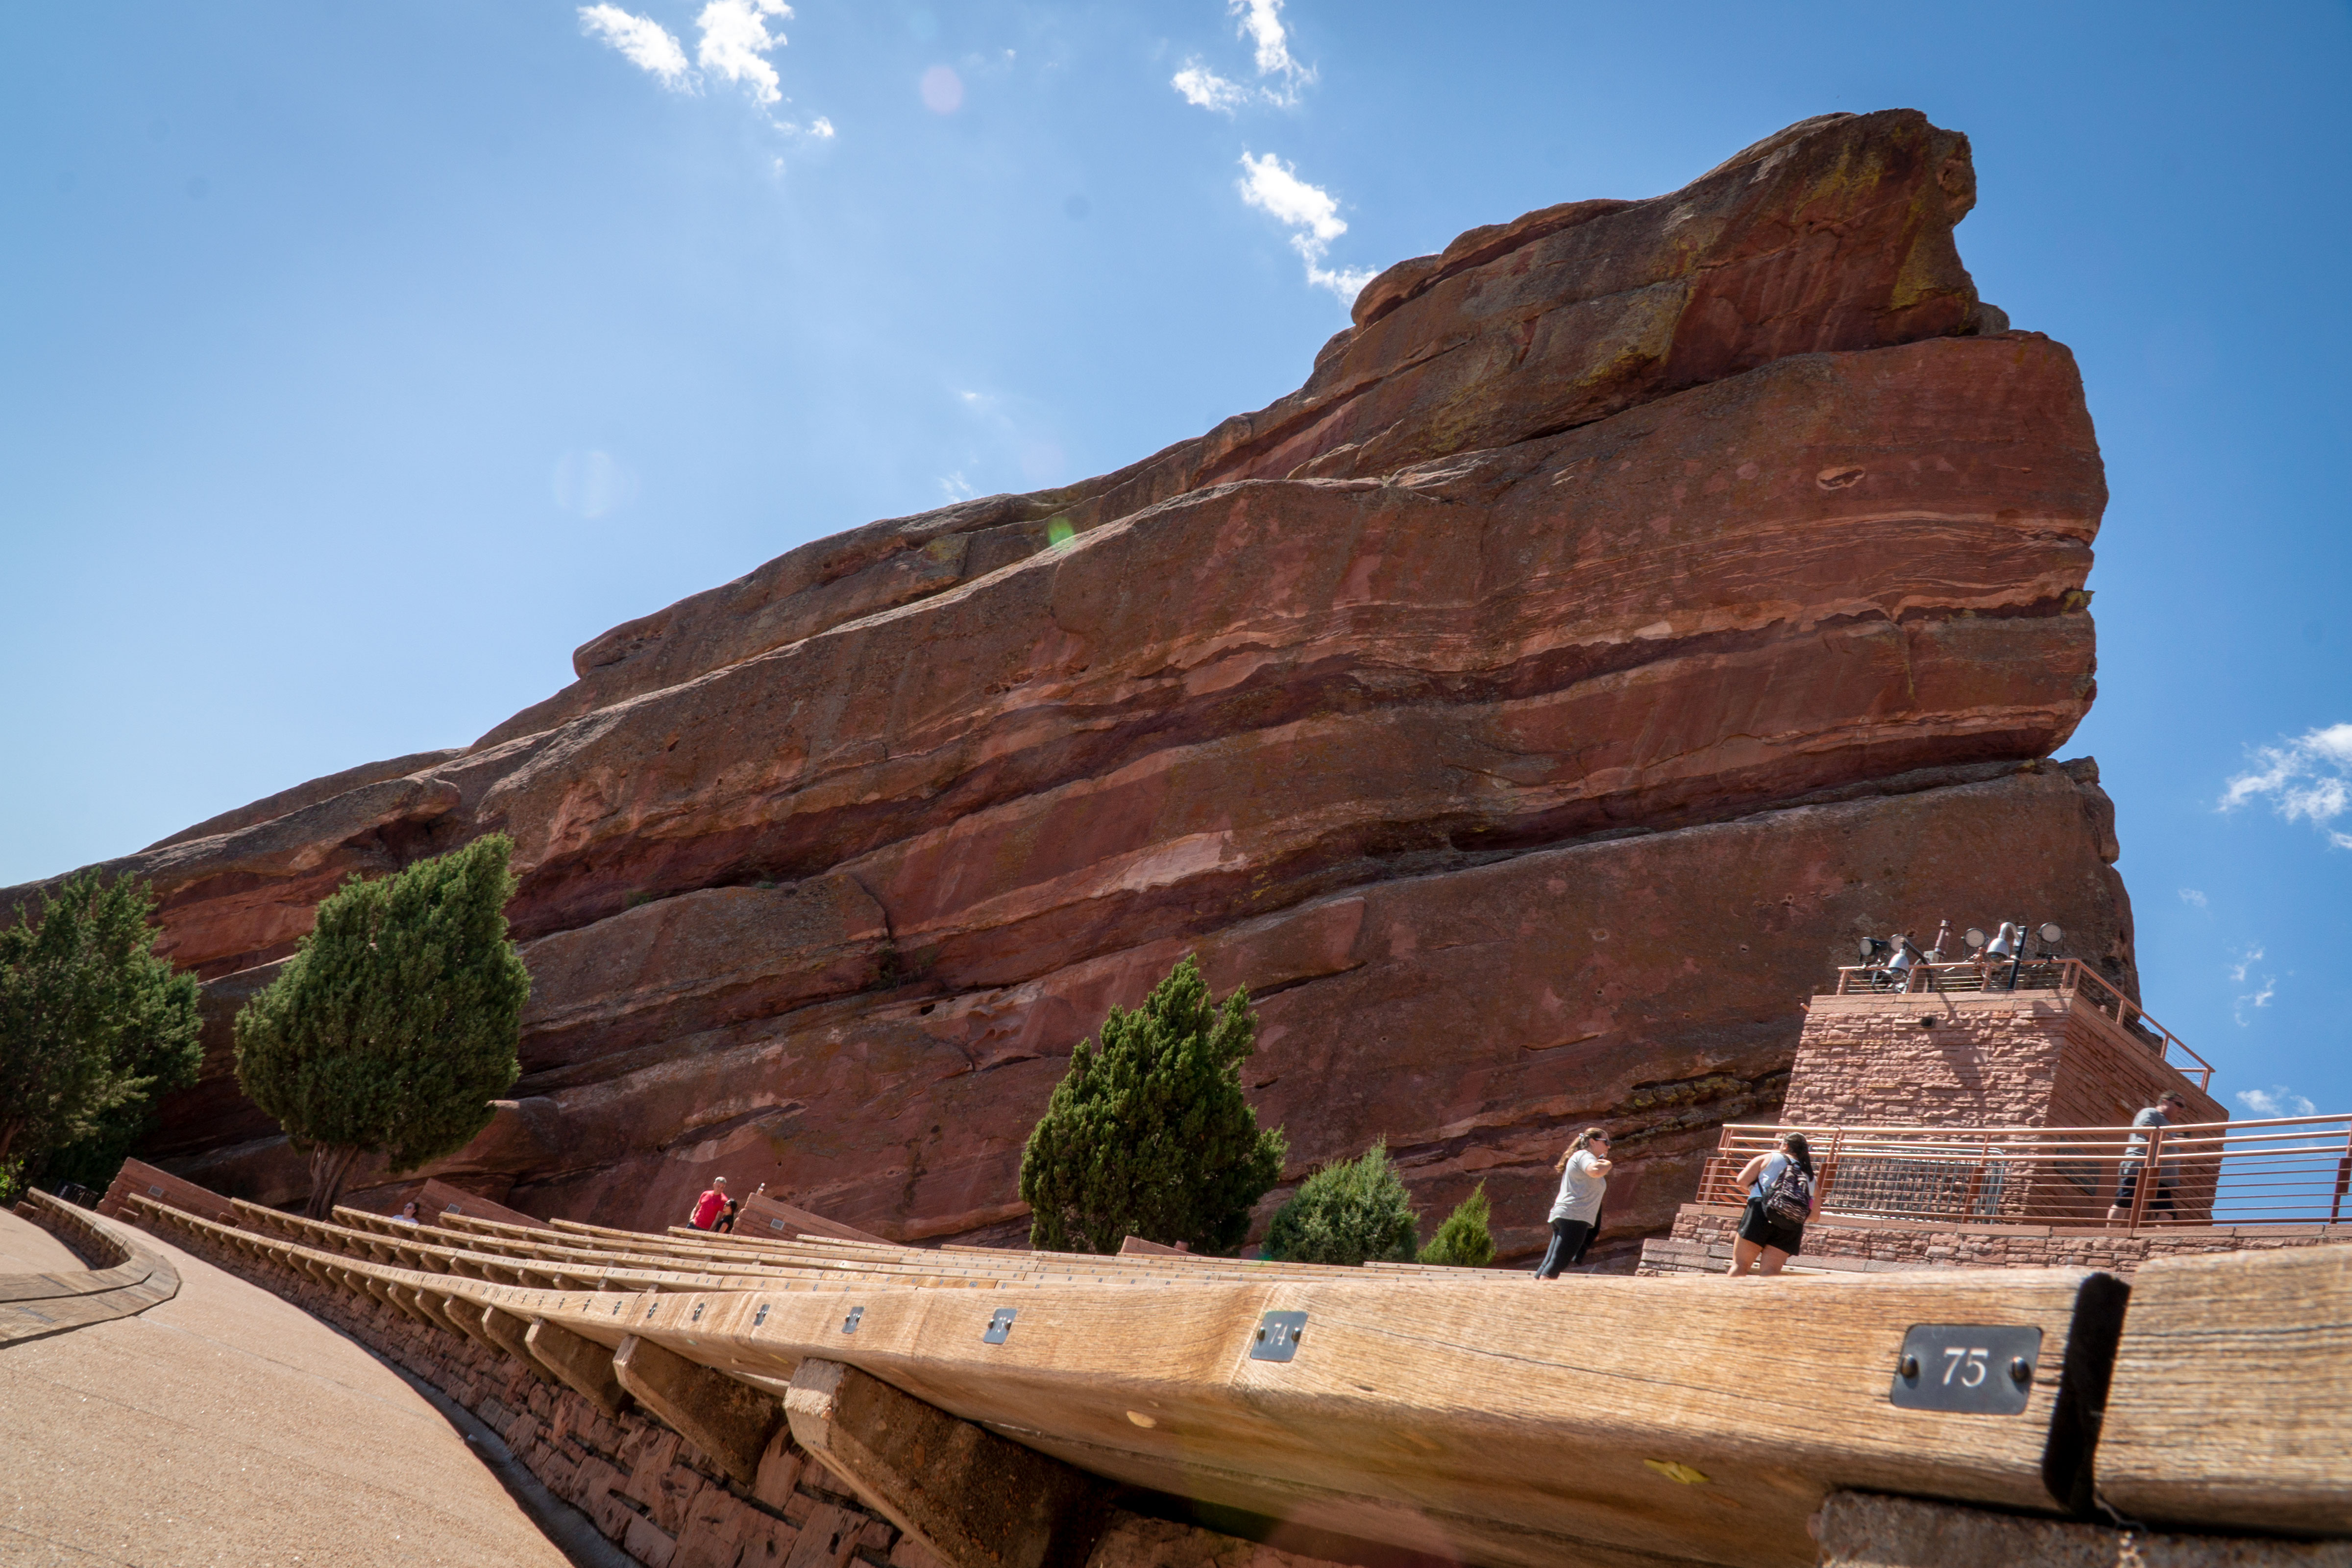 A sunny day at Red Rocks Amphitheatre in Morrison, September 2019.